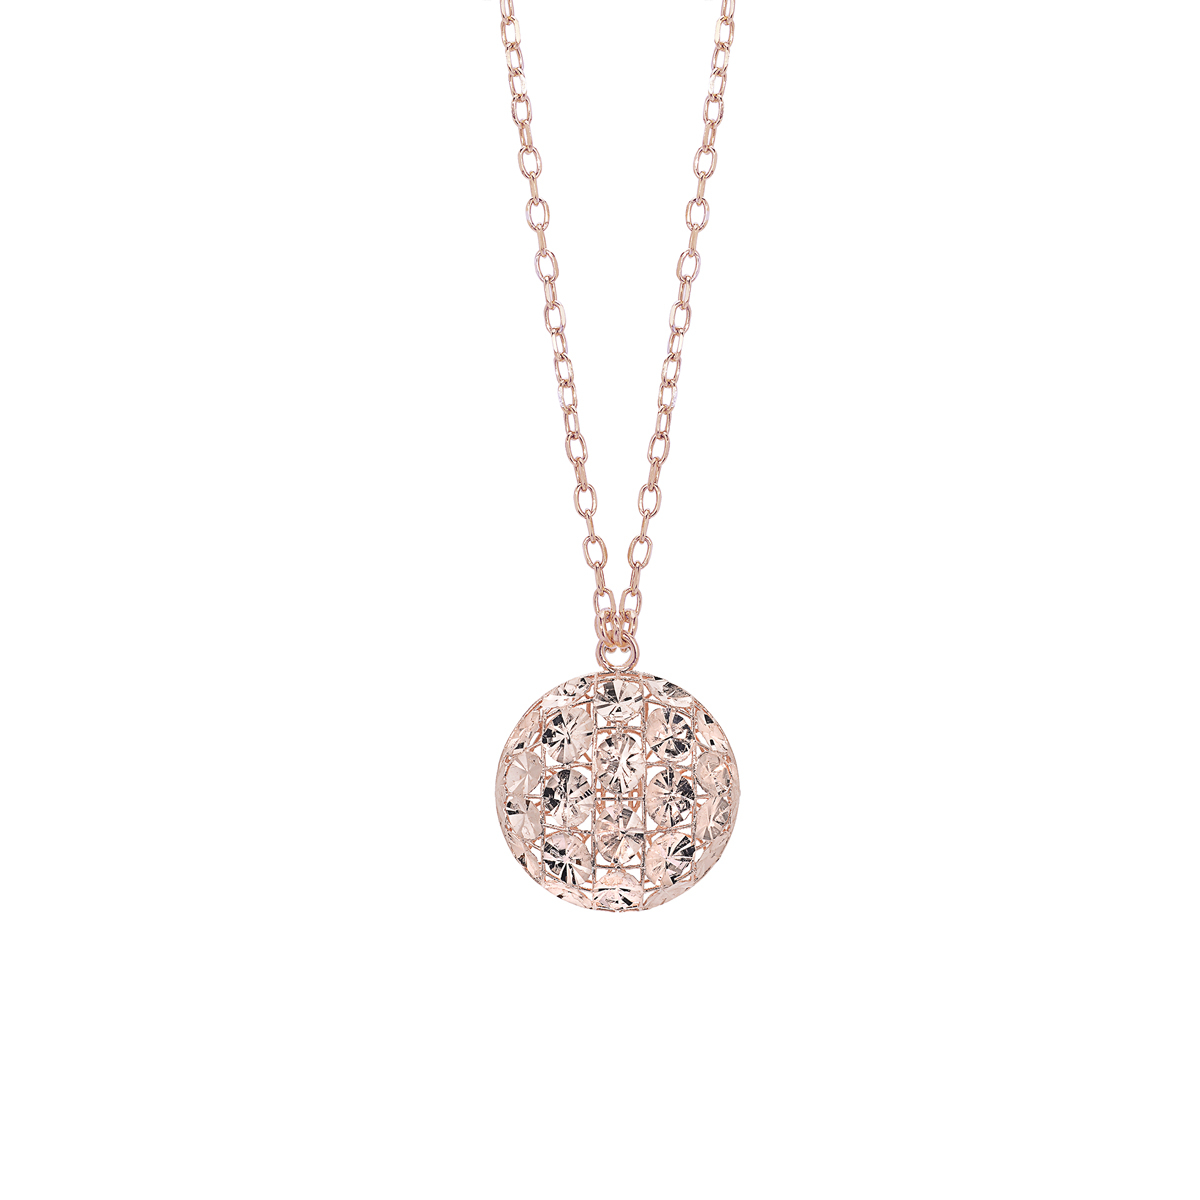 Diamond Effect Rhodium-Plated Silver Necklace